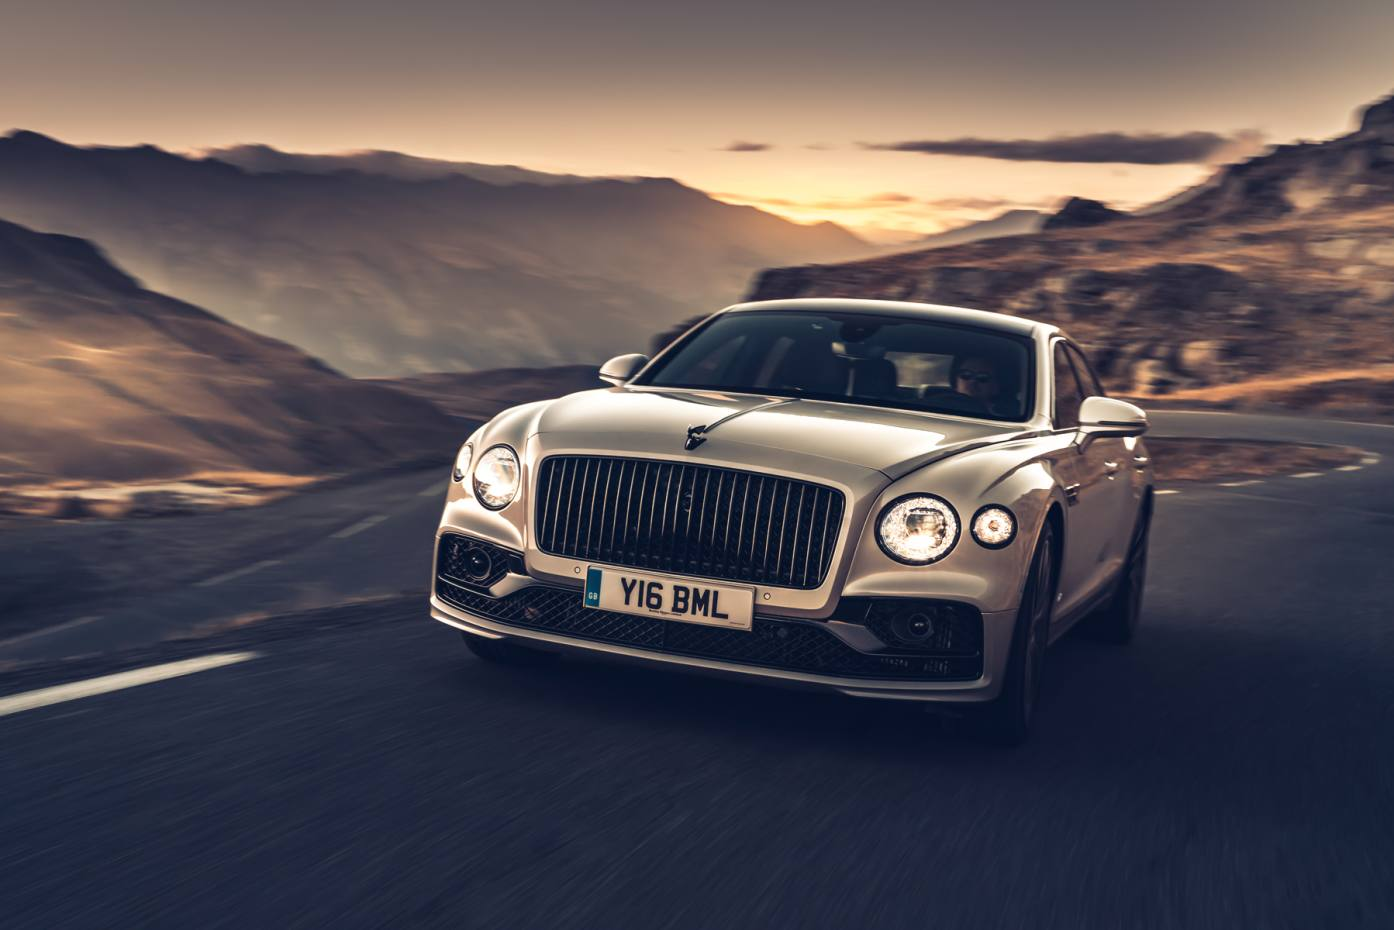 The new Bentley four-door Flying Spur limo